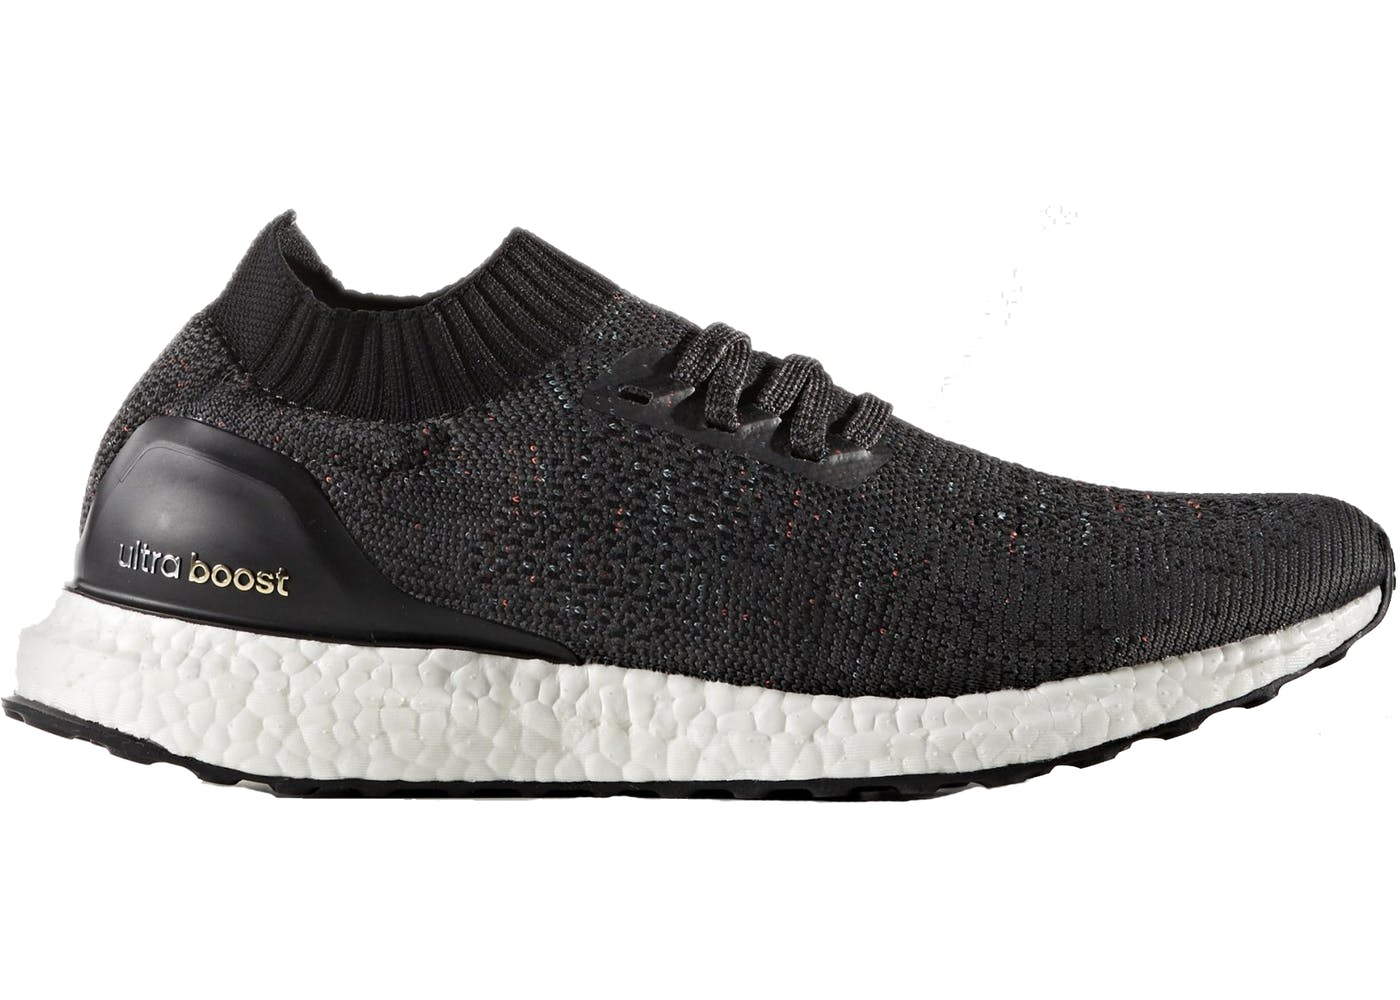 adidas ultra boost uncaged solid grey multi color. Black Bedroom Furniture Sets. Home Design Ideas